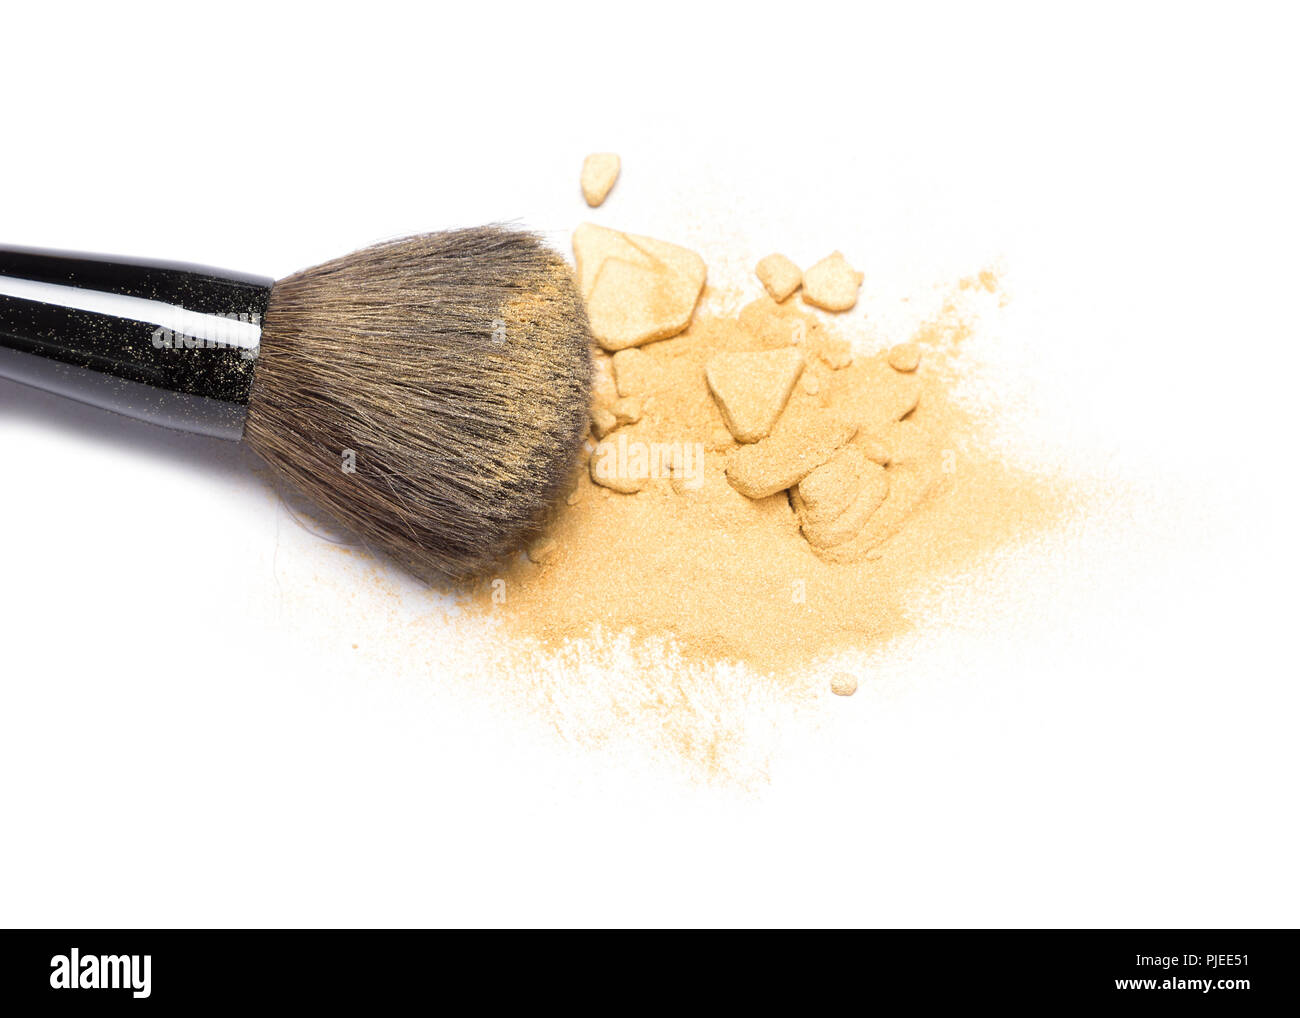 Close-up of makeup brush with crushed mineral shimmer powder golden color on white background - Stock Image